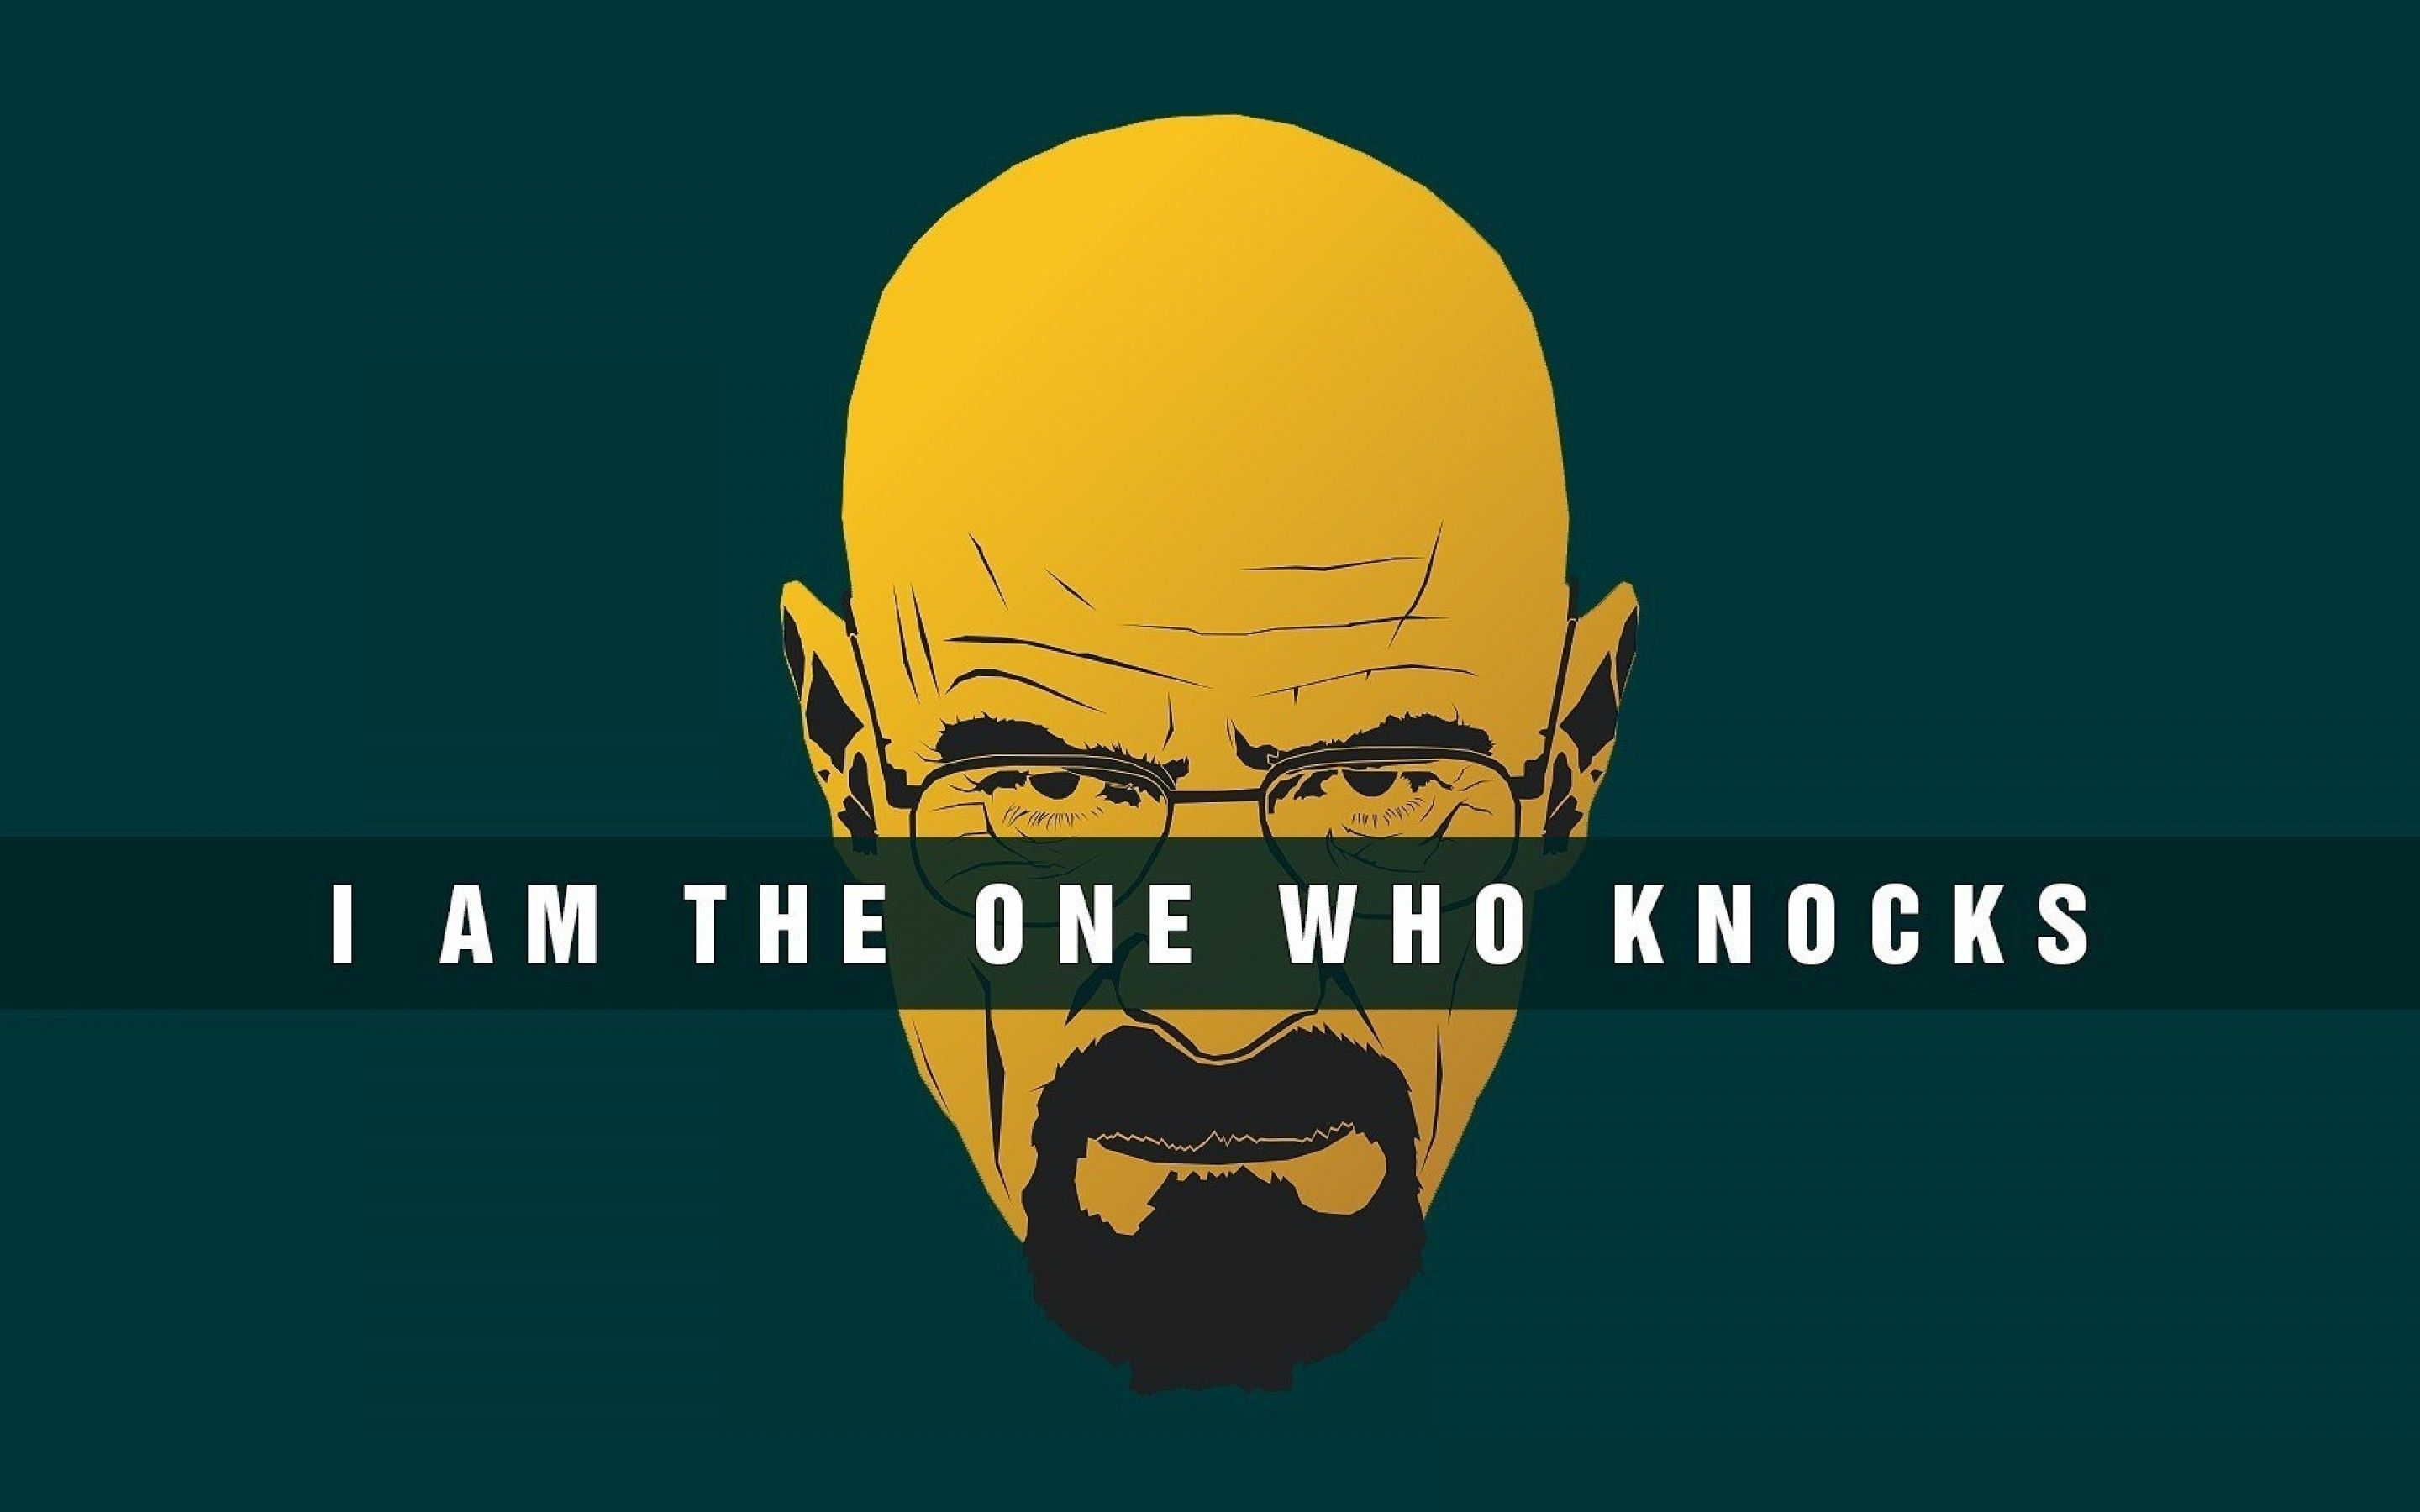 2880x1800 Download 2880x1800 I Am The One Who Knocks, Breaking Bad ...